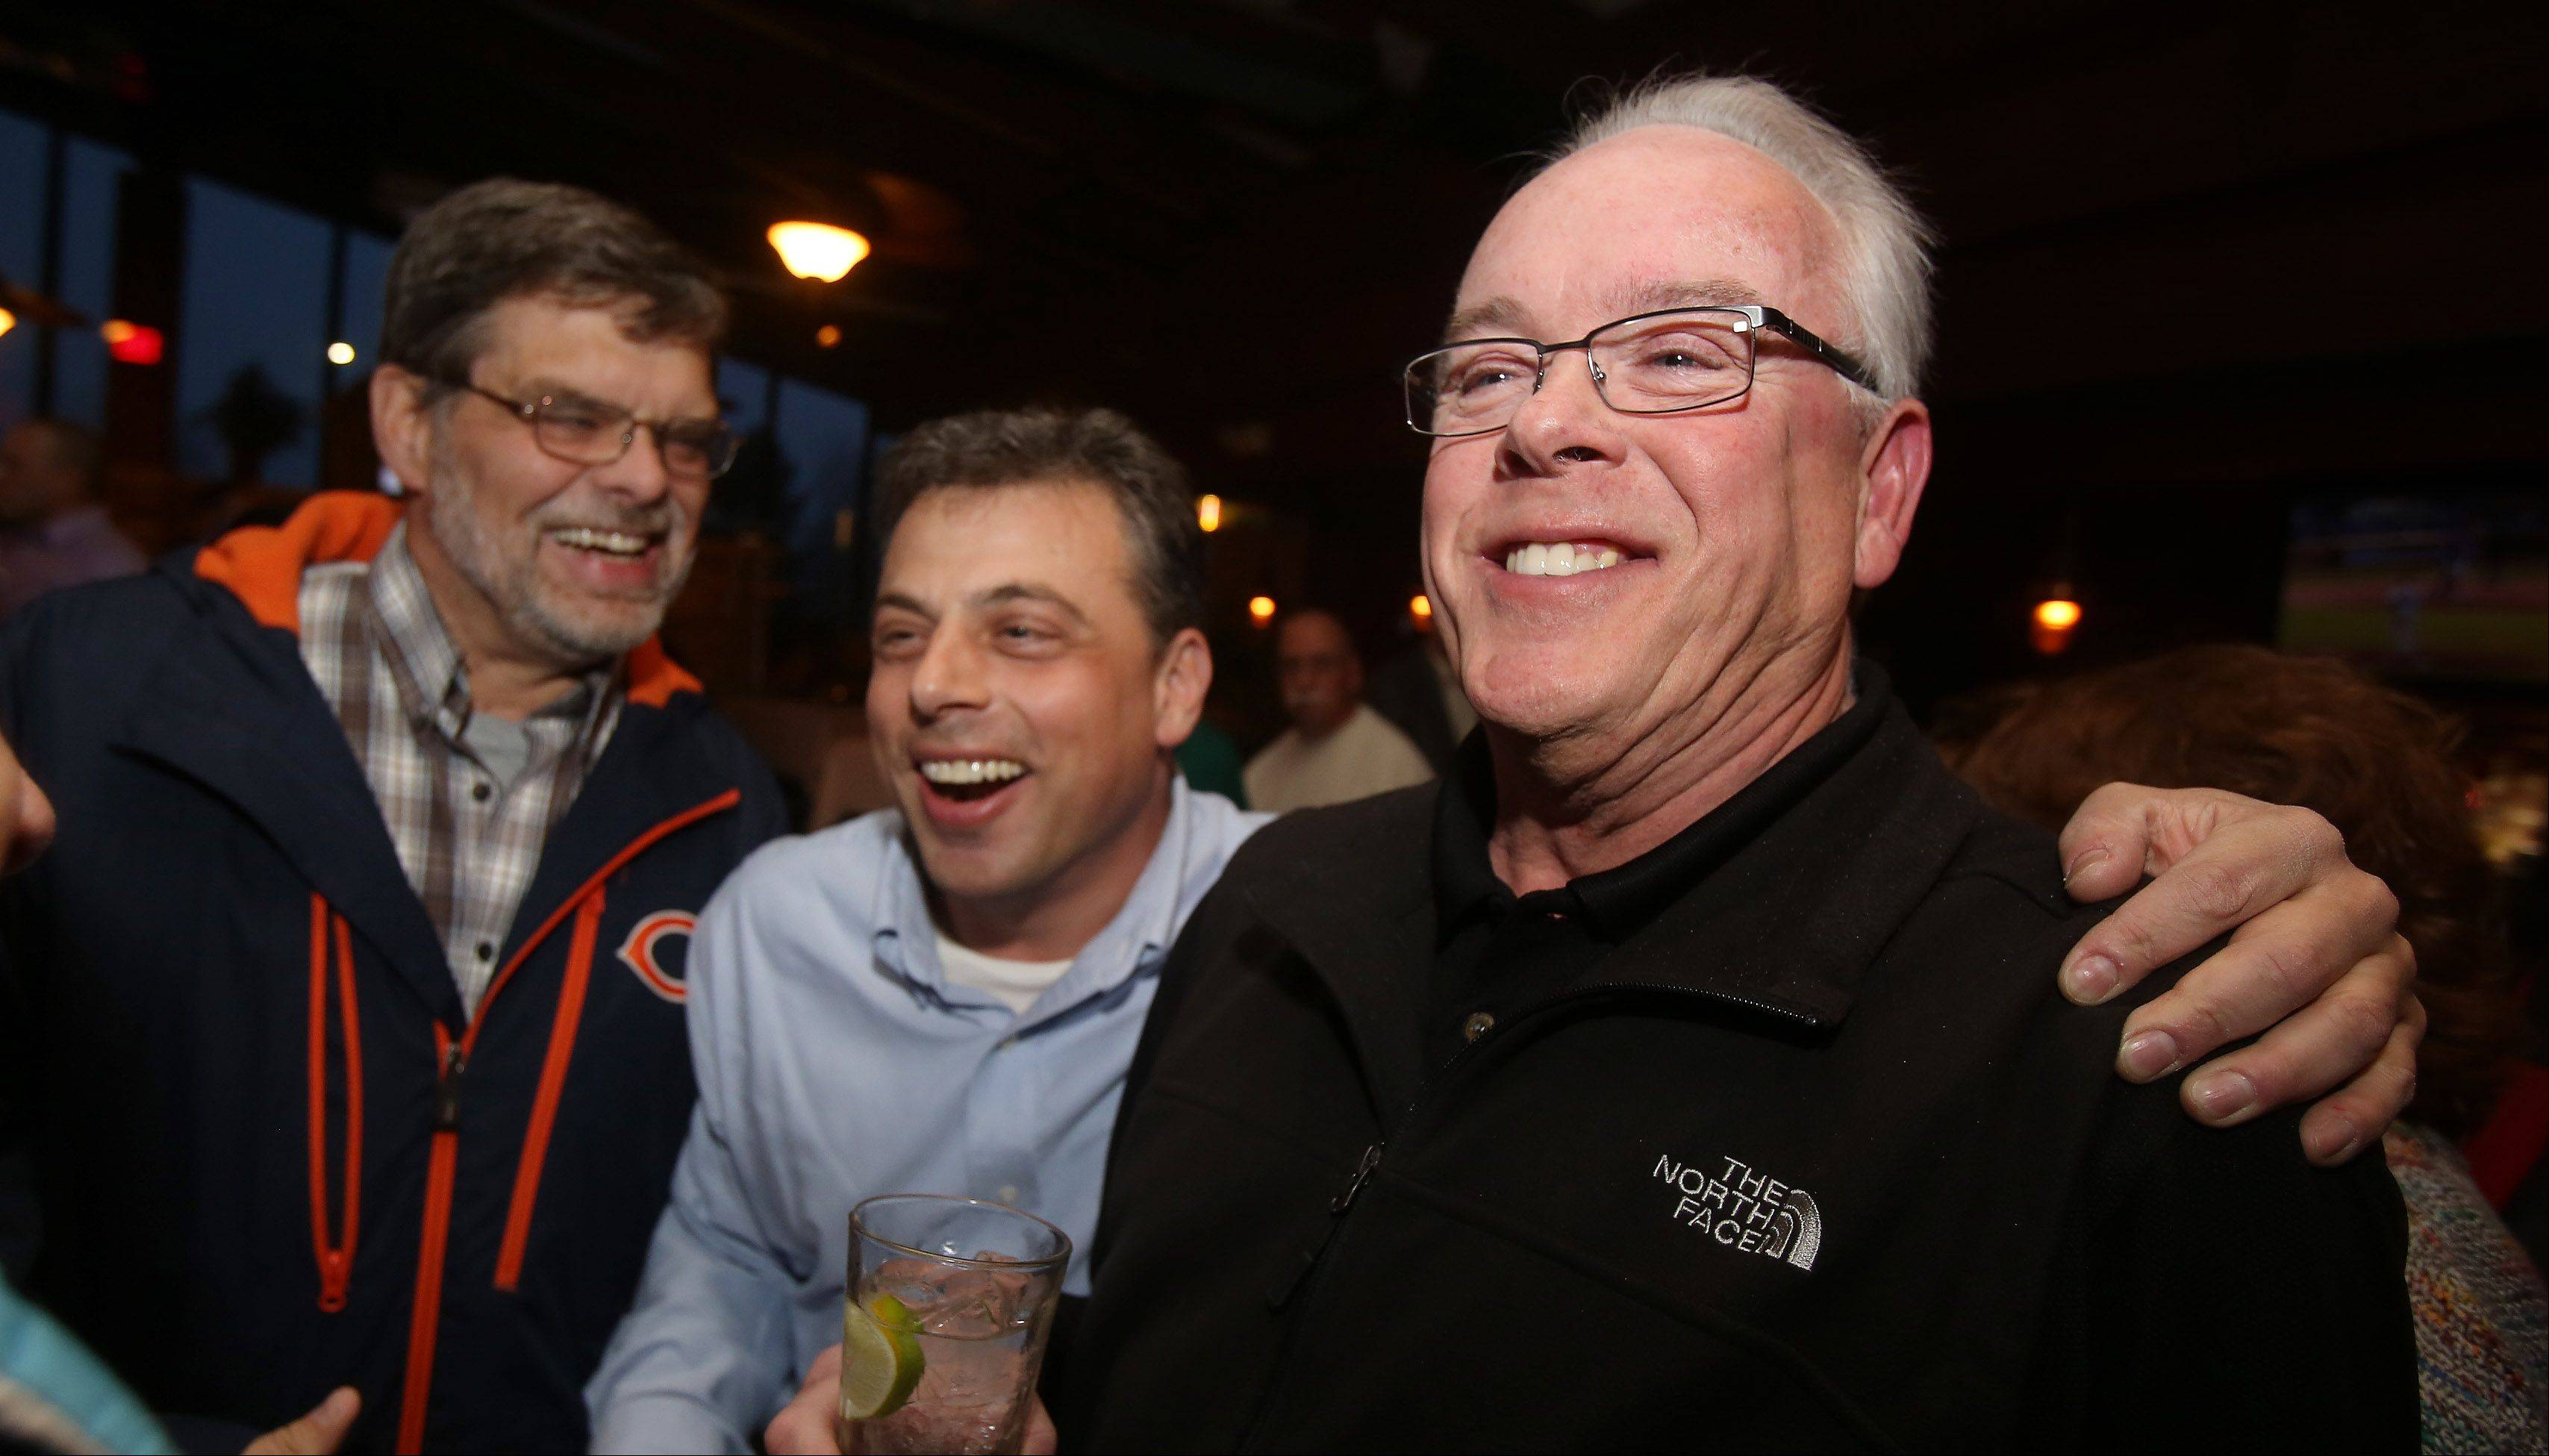 Lake Zurich village president candidate Tom Poynton, right, is congratulated by trustee candidate Jeff Halen as they watch election results come in during his election party Tuesday at Beelow's Steakhouse. Poynton and Halen both won.